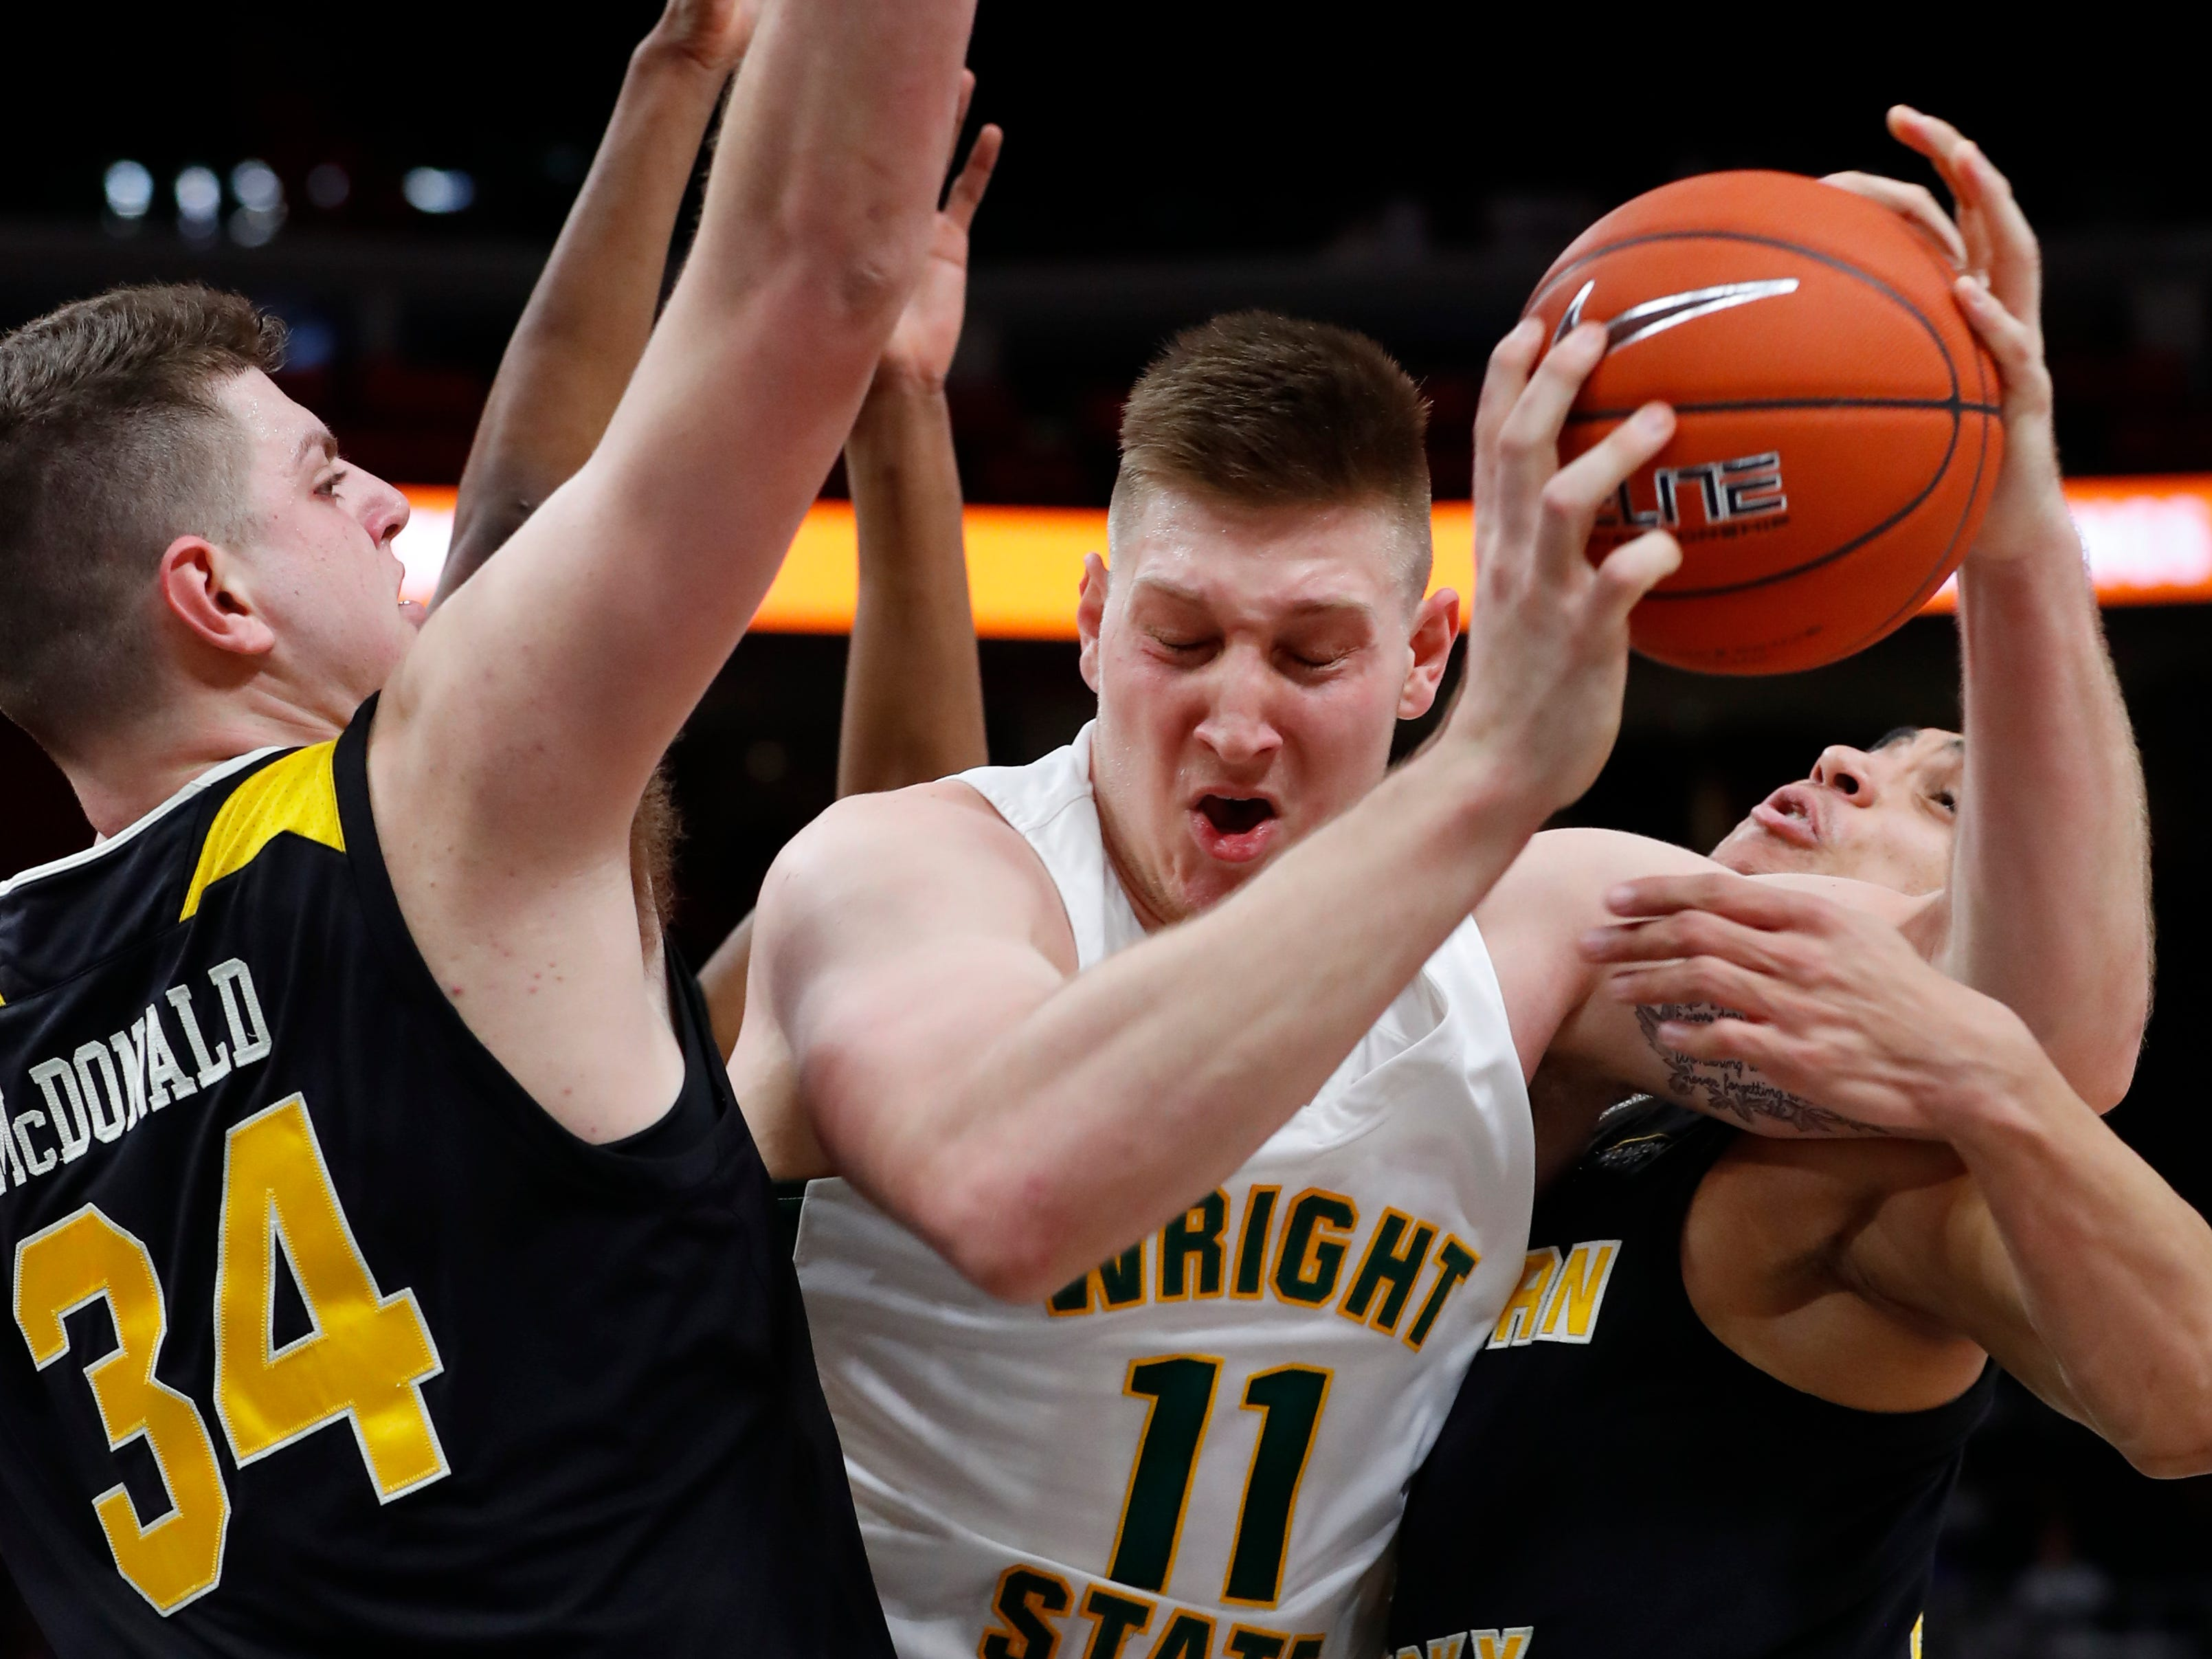 Wright State center Loudon Love (11) tries to drive between Northern Kentucky forward Drew McDonald (34) and Northern Kentucky guard Paul Djoko (2) in the first half of an NCAA college men's basketball game in the Horizon League conference tournament championship in Detroit, Tuesday, March 12, 2019.